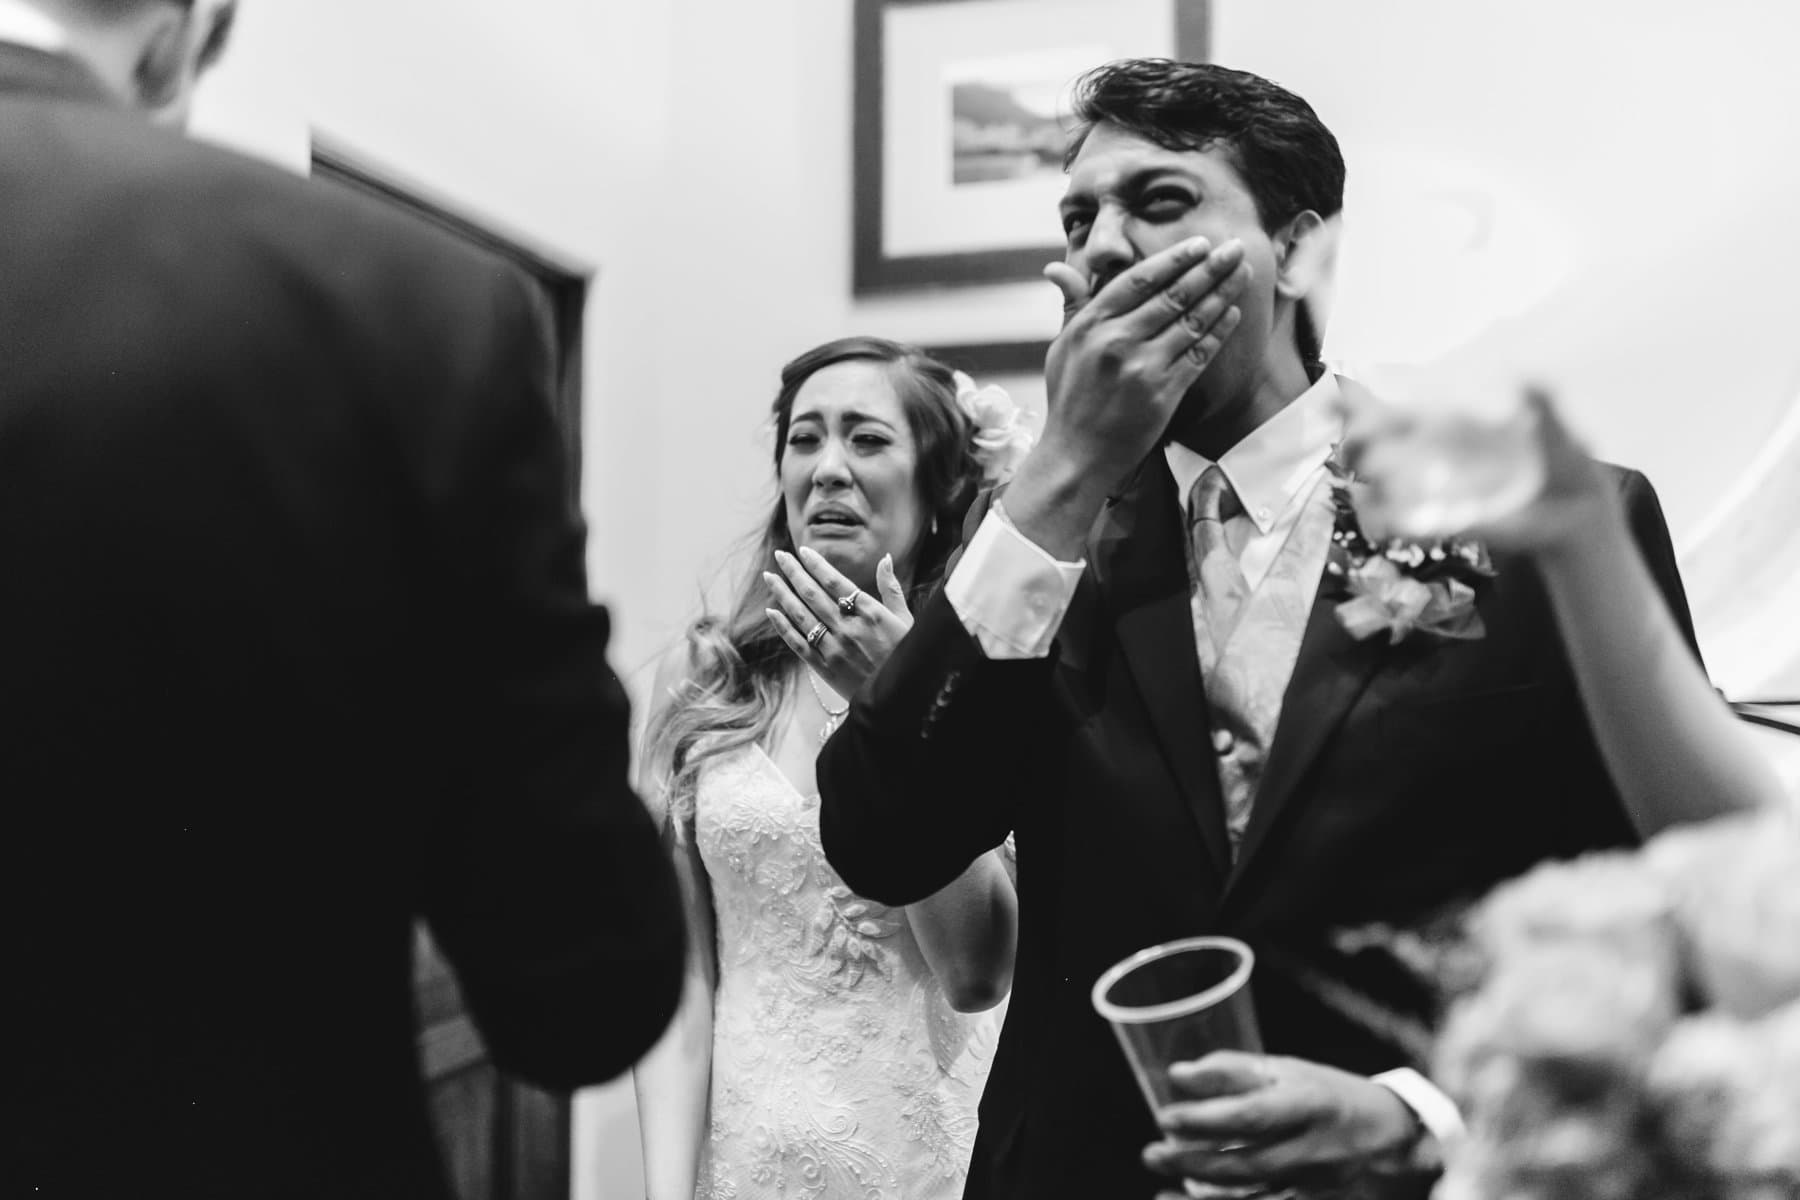 the post wedding toast was strong Phoenix documentary candid wedding photographer